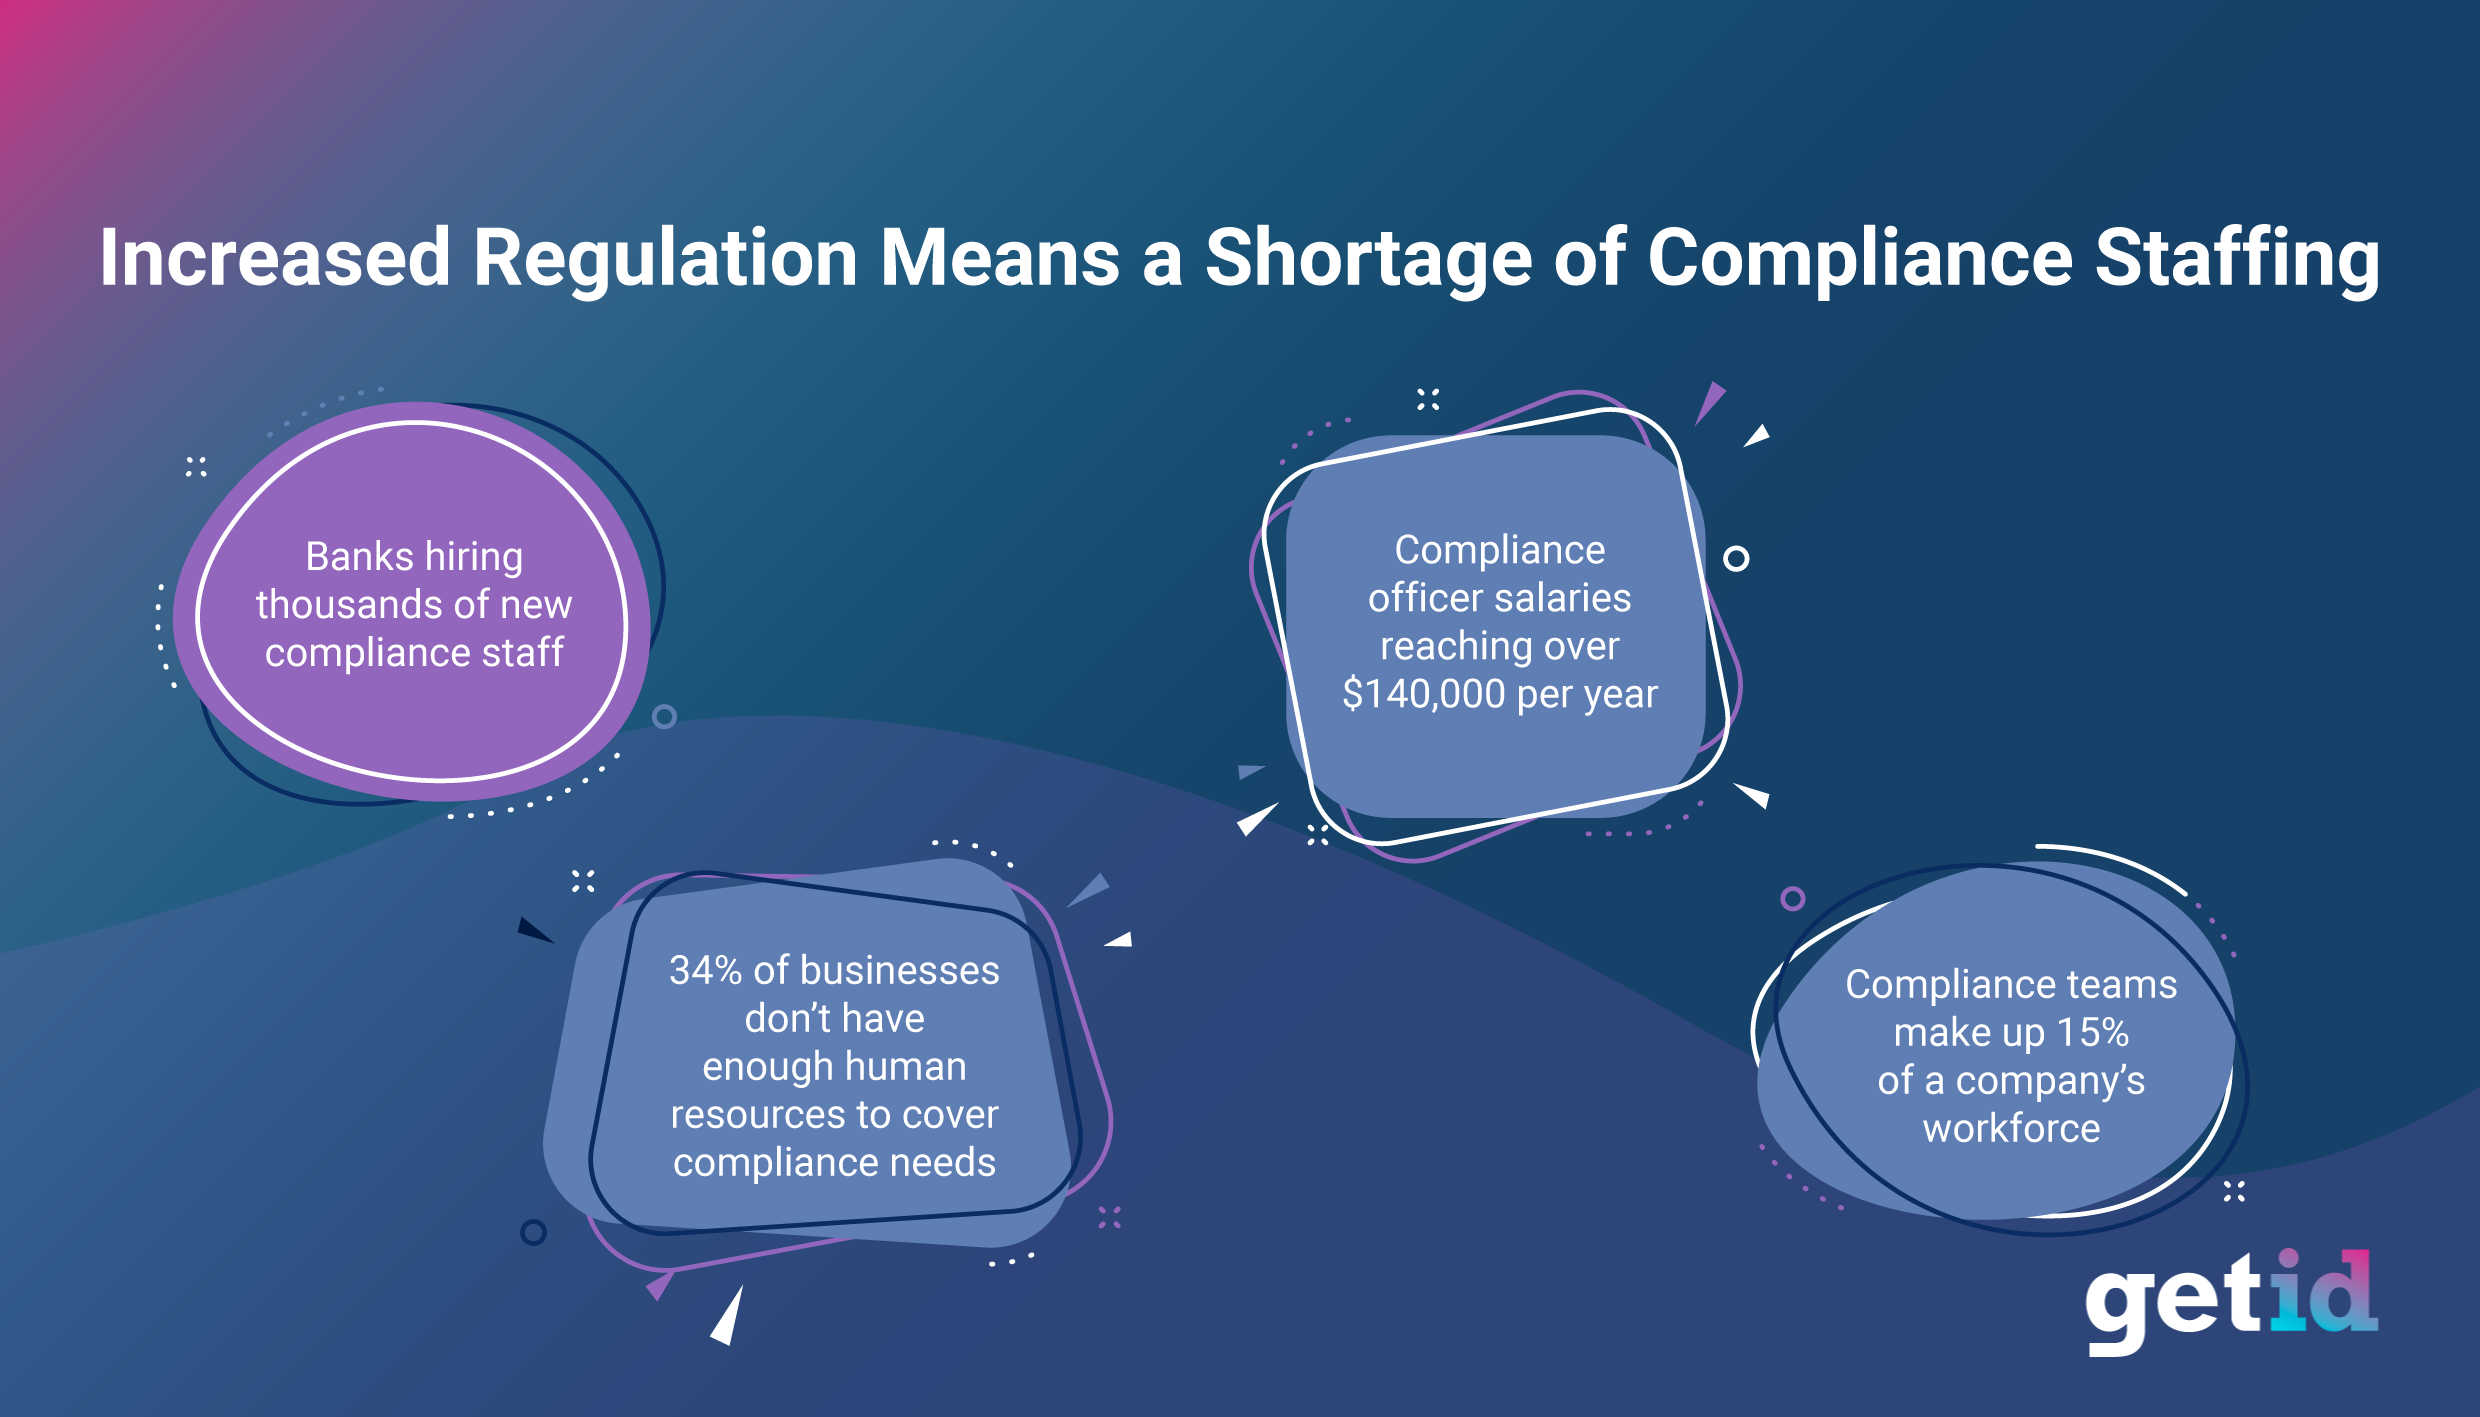 Increased Regulation means a shortage in compliance staffing